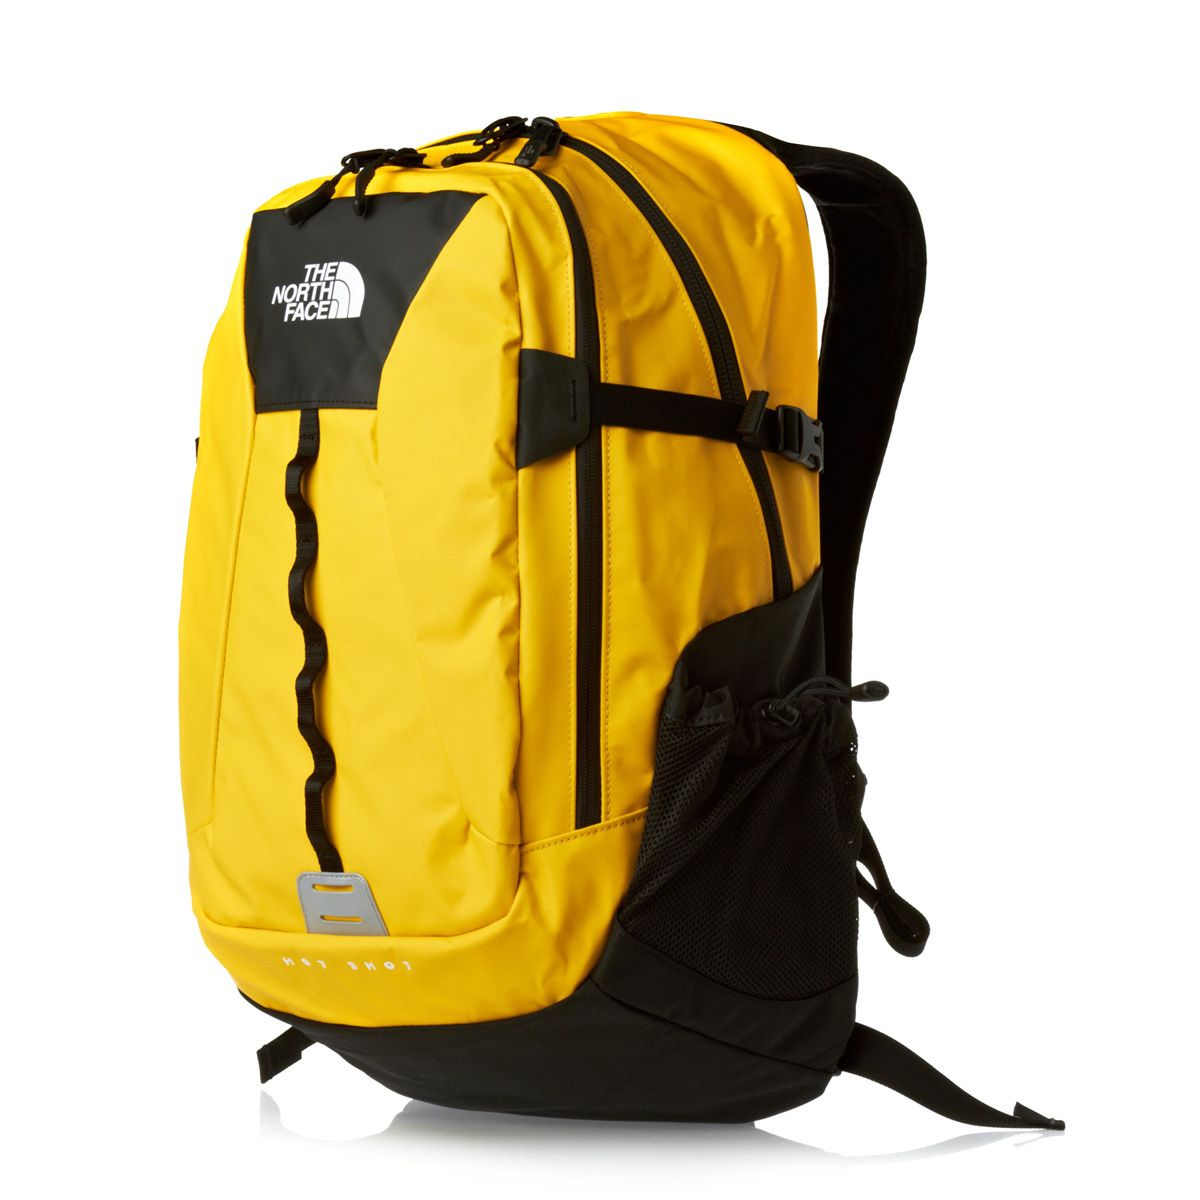 the-north-face-backpacks-the-north-face-base-camp-hot-shot-backpack-tnf-yellow-black